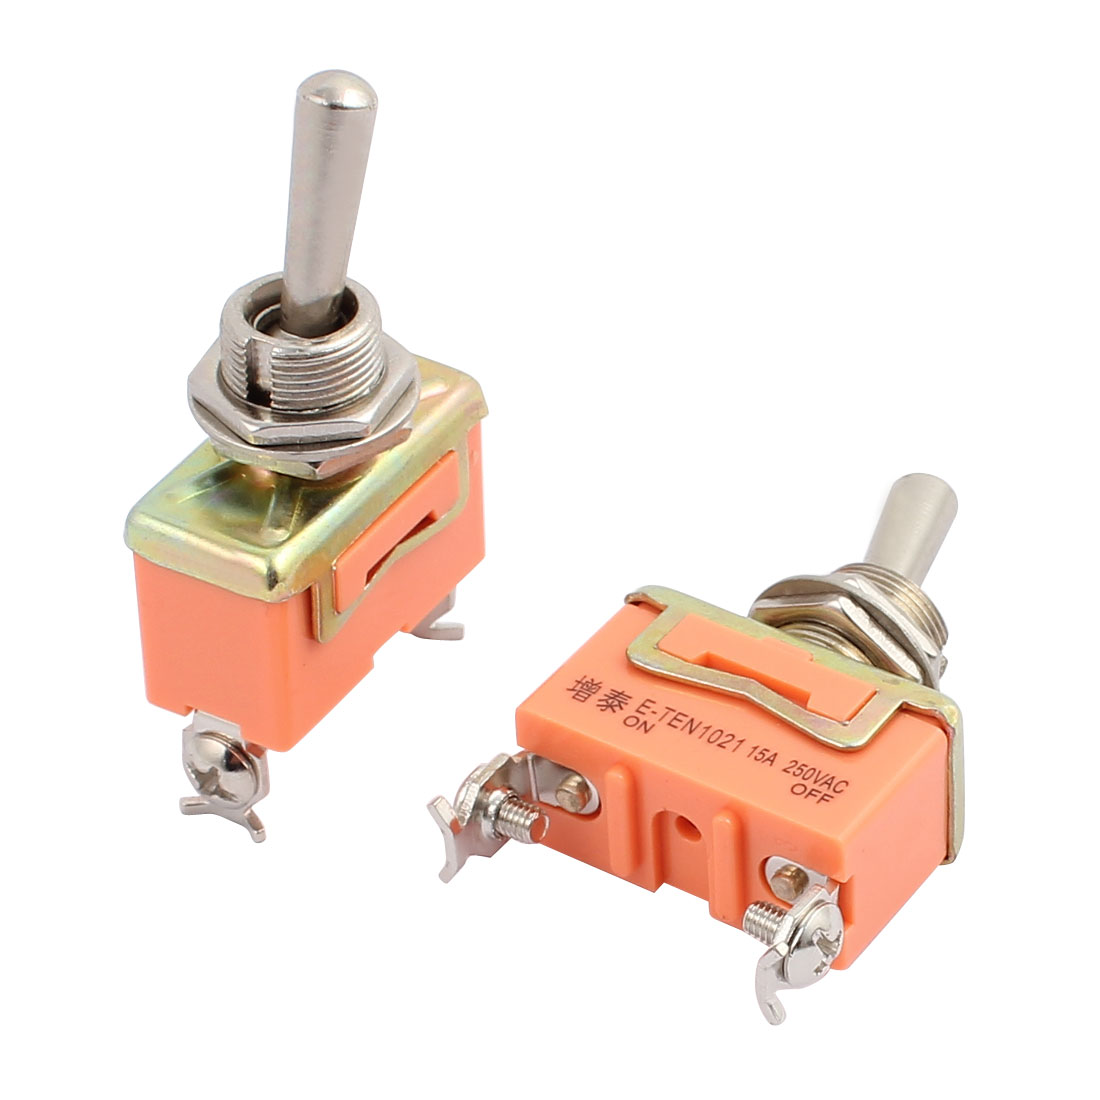 2pcs AC 250V 15A 12mm Thread Dia SPST 2-Pin 2-Position ON/OFF Toggle Switch